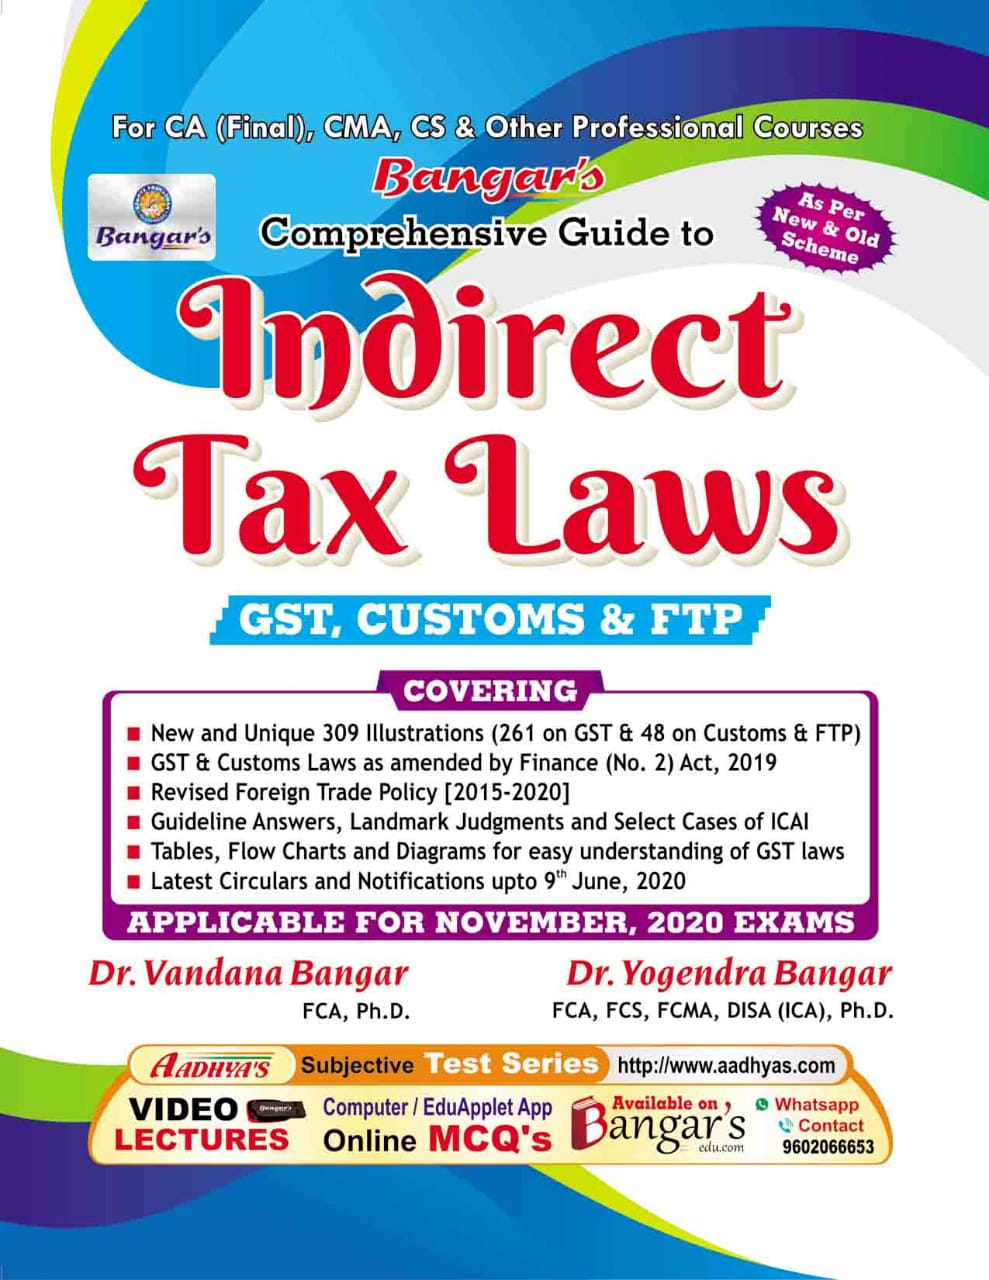 Bangar's Comprehensive Guide to Indirect Taxes Laws for CA Final, CMA, CS by Dr. Vandana Bagar and Dr. Yogendra Bangar (Aadhya Prakashan) for Nov 2020 exams